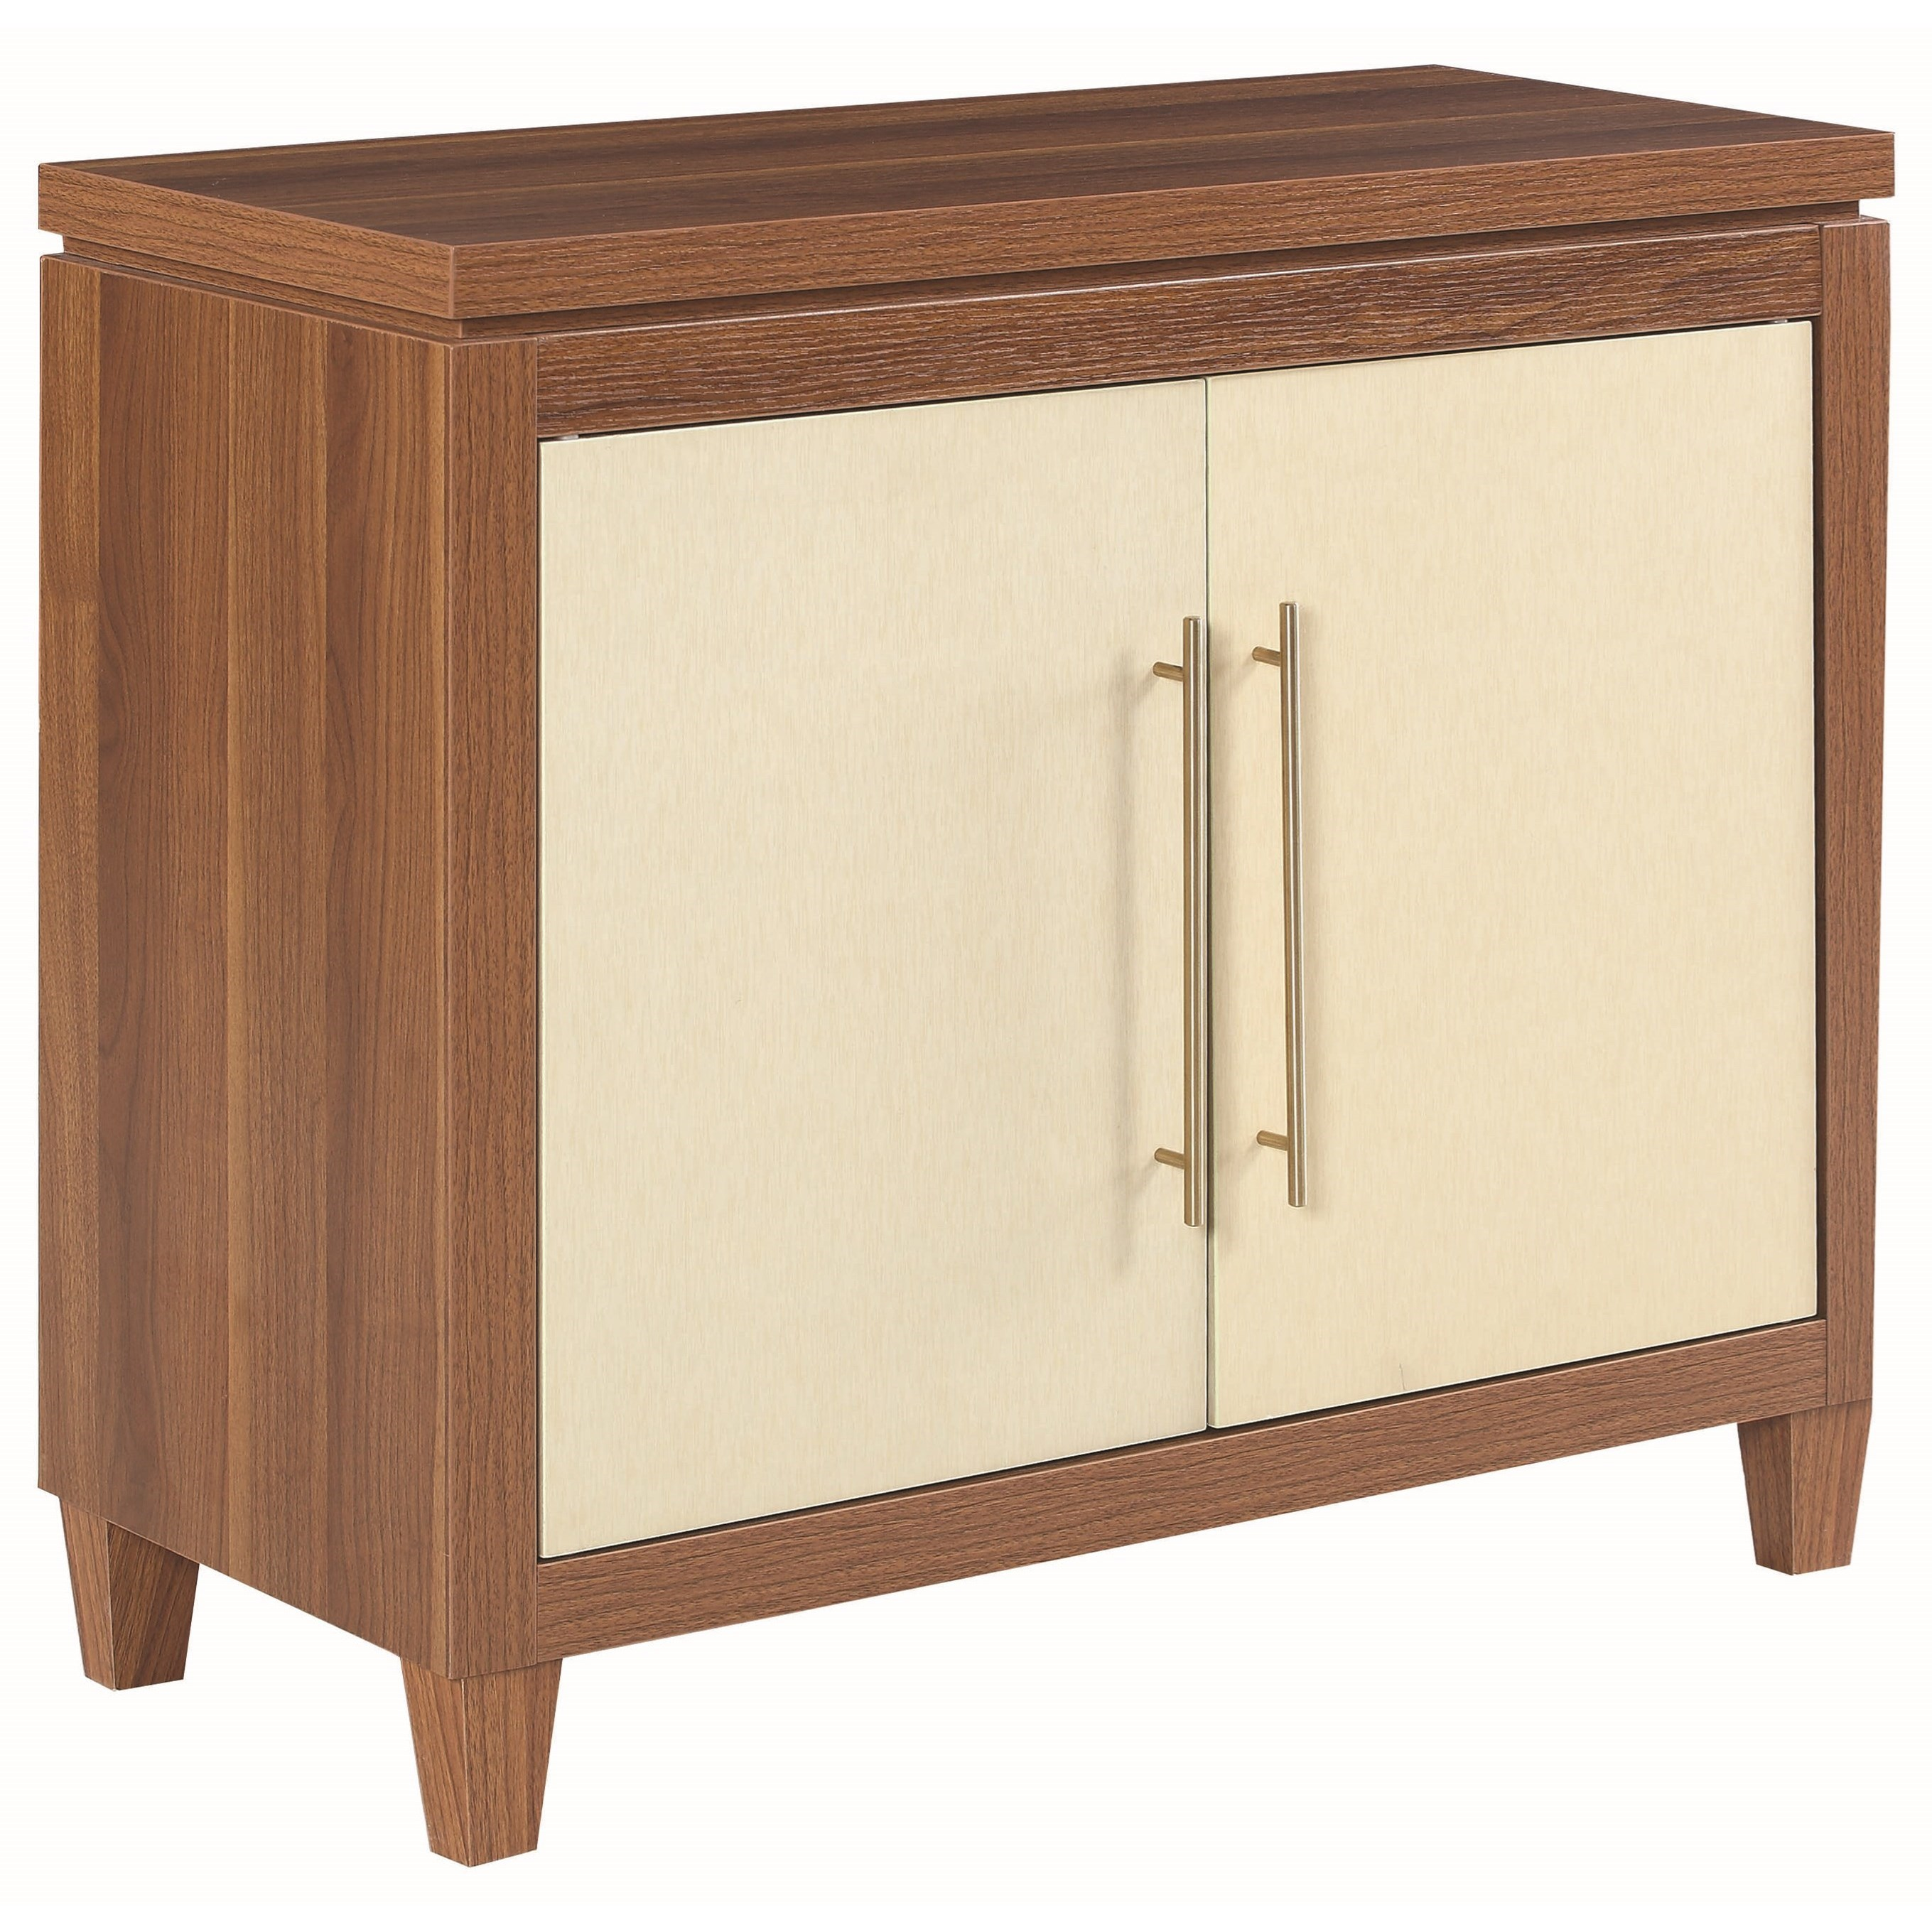 Coaster Accent Cabinets Accent Cabinet - Item Number: 950705